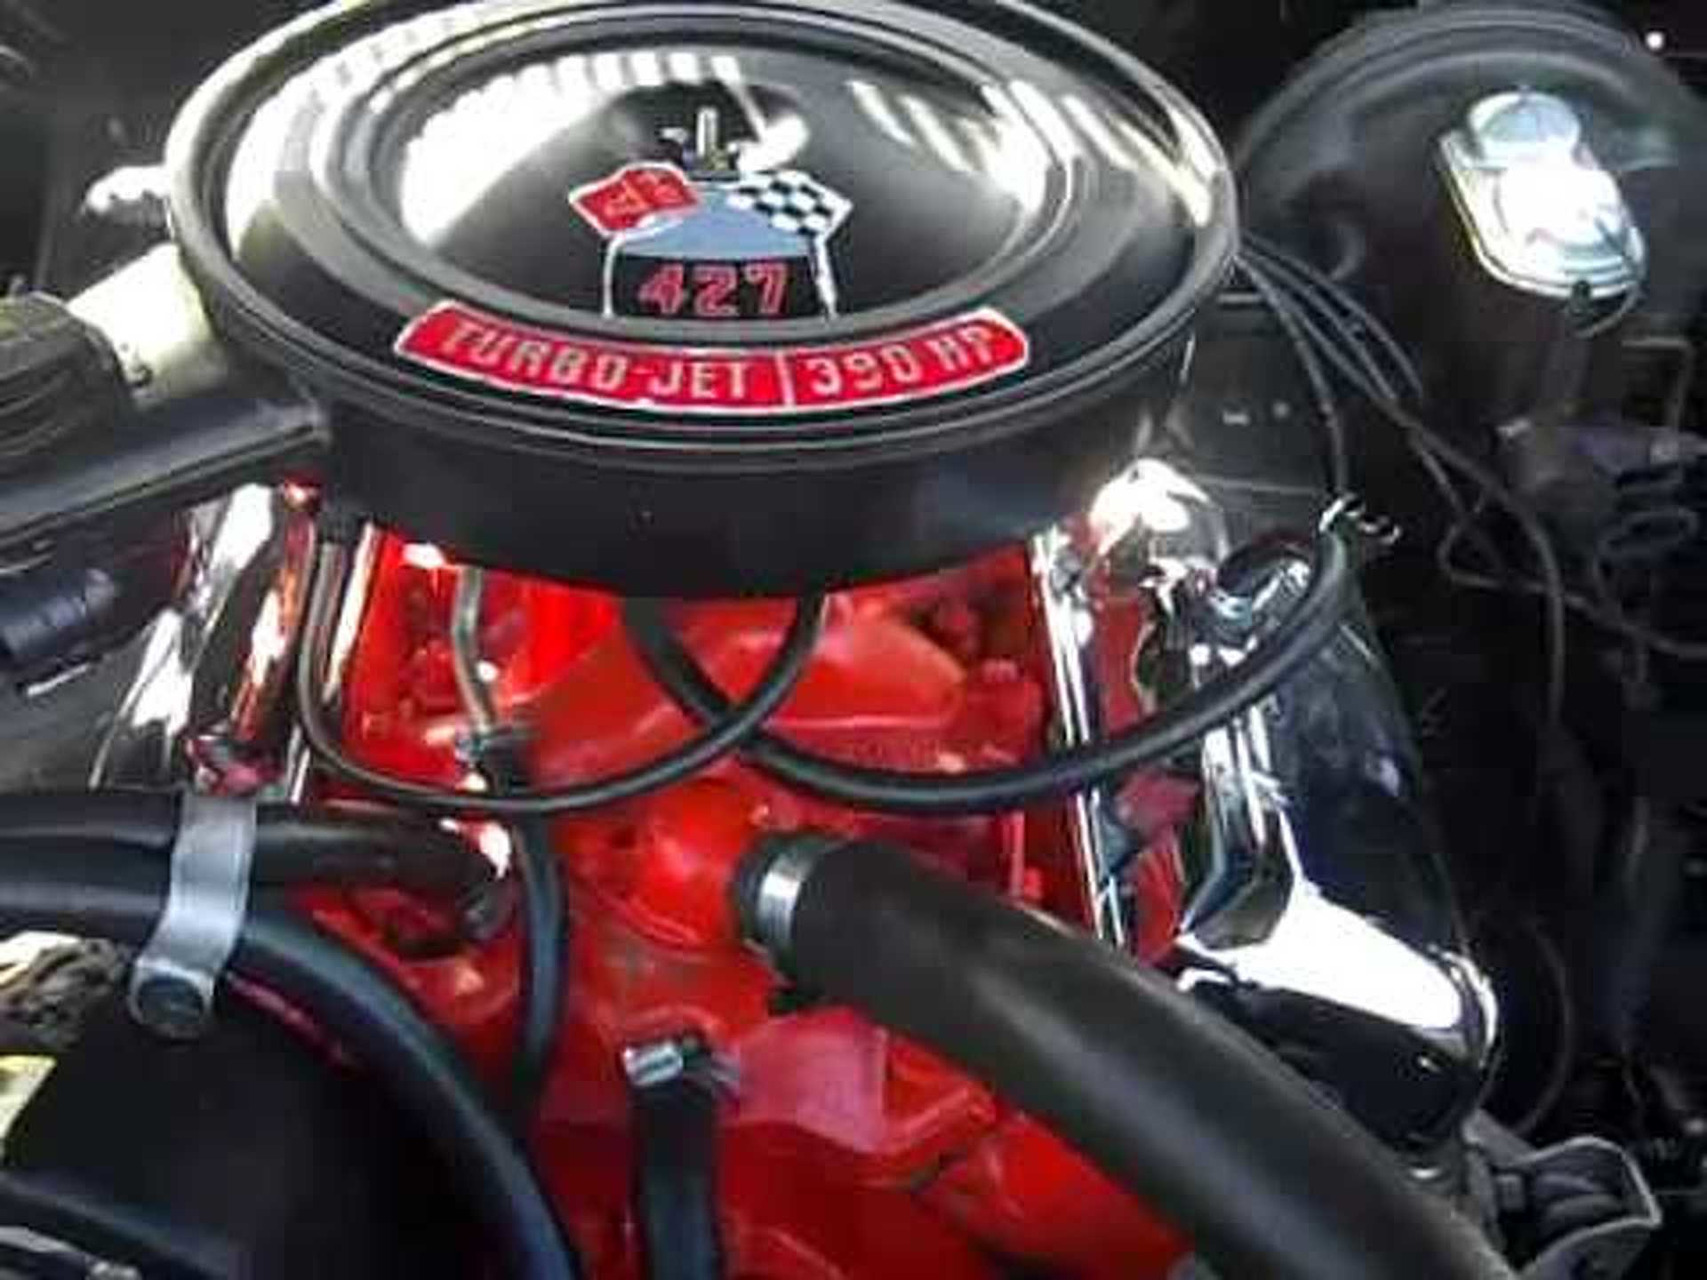 1969 CHEVY IMPALA SS 427 MOTOR 4 SPEED FOR SALE!